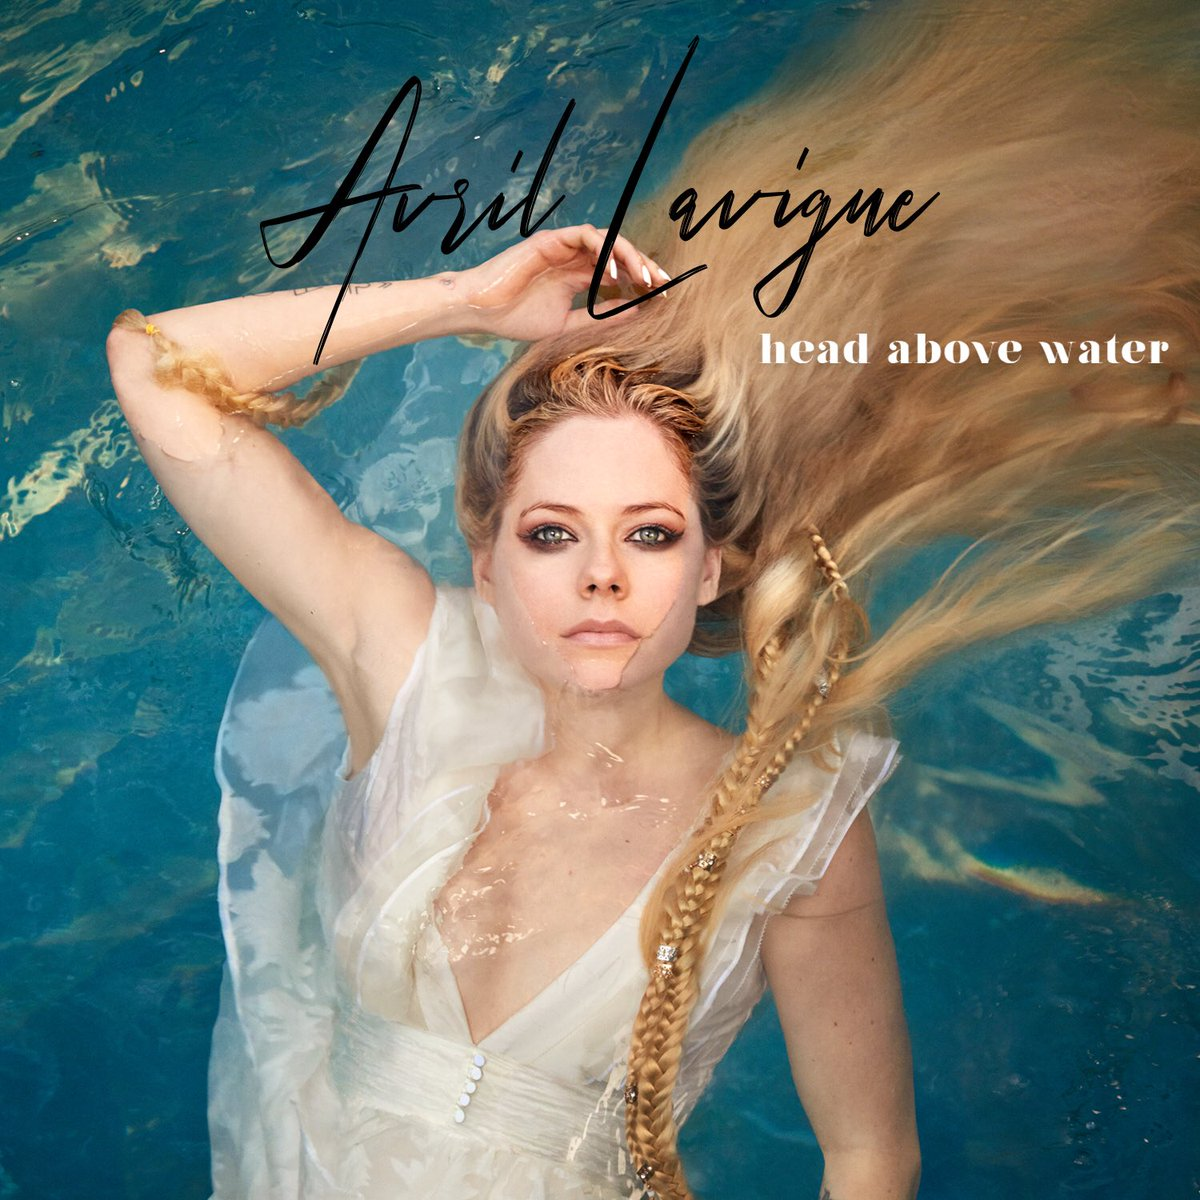 Avril Lavigne makes emotional comeback after 5 years with 'Head Above Water'